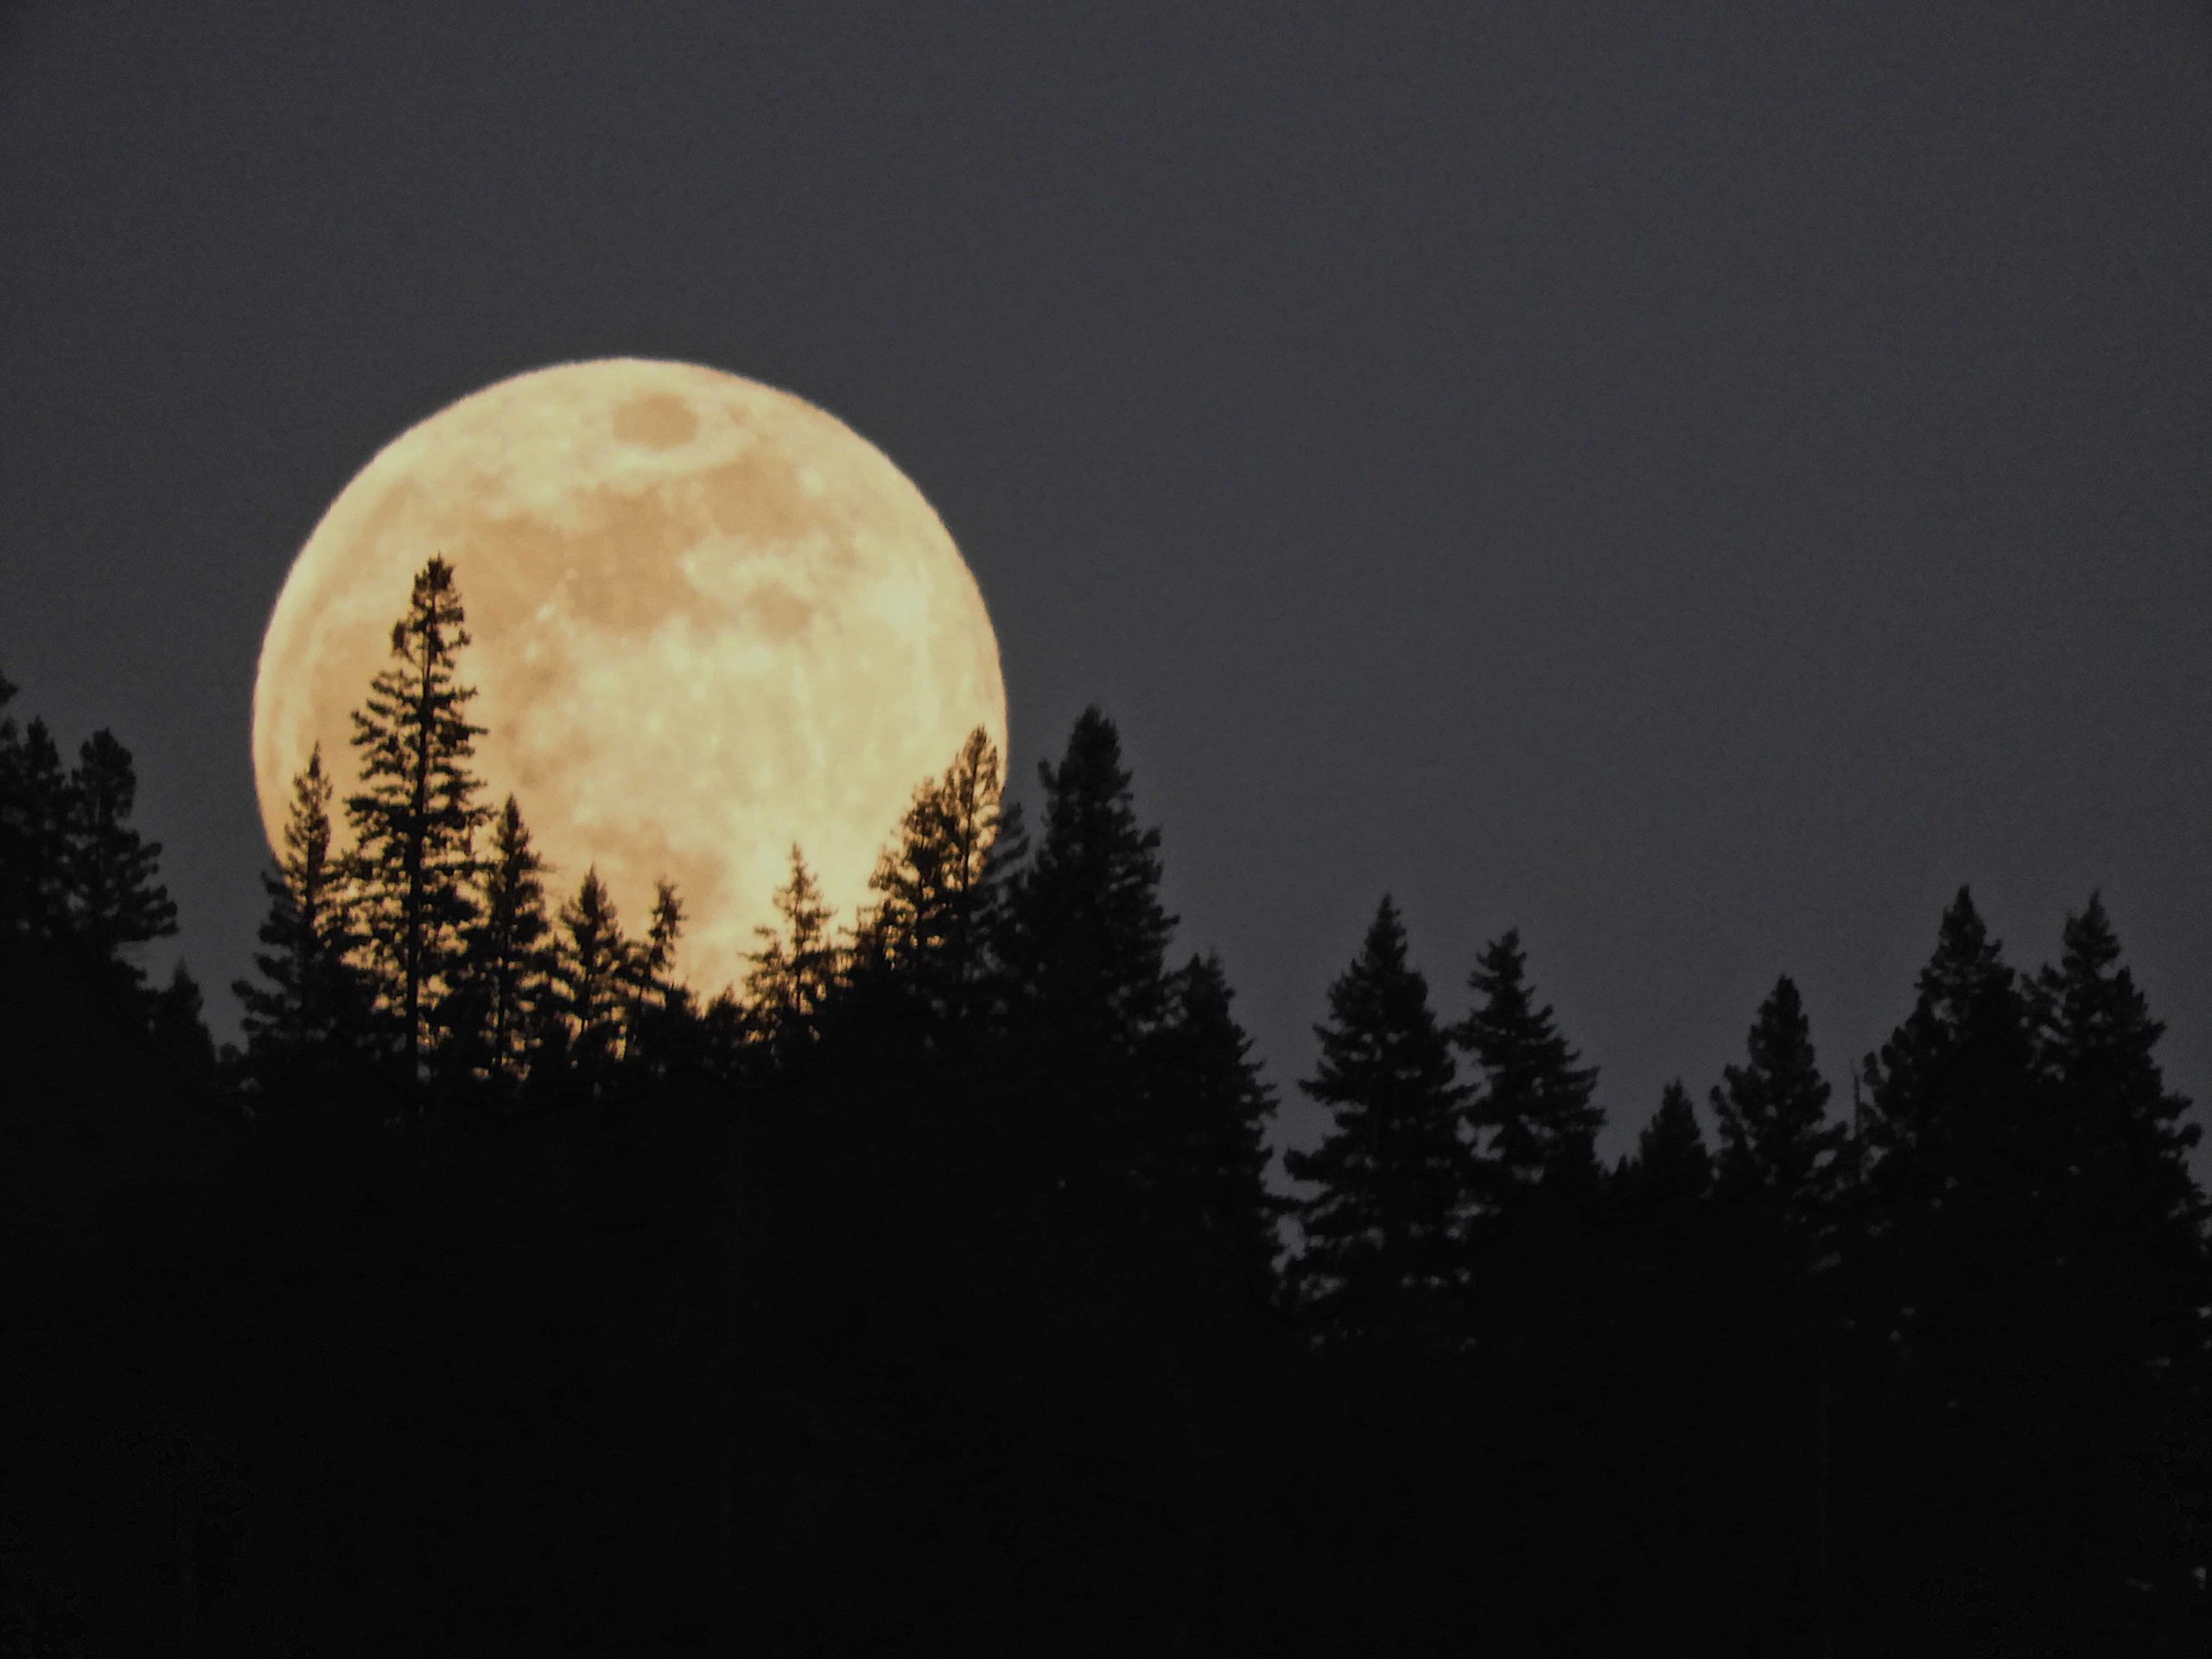 moon-rising-over-the-forest-YXUYQNH